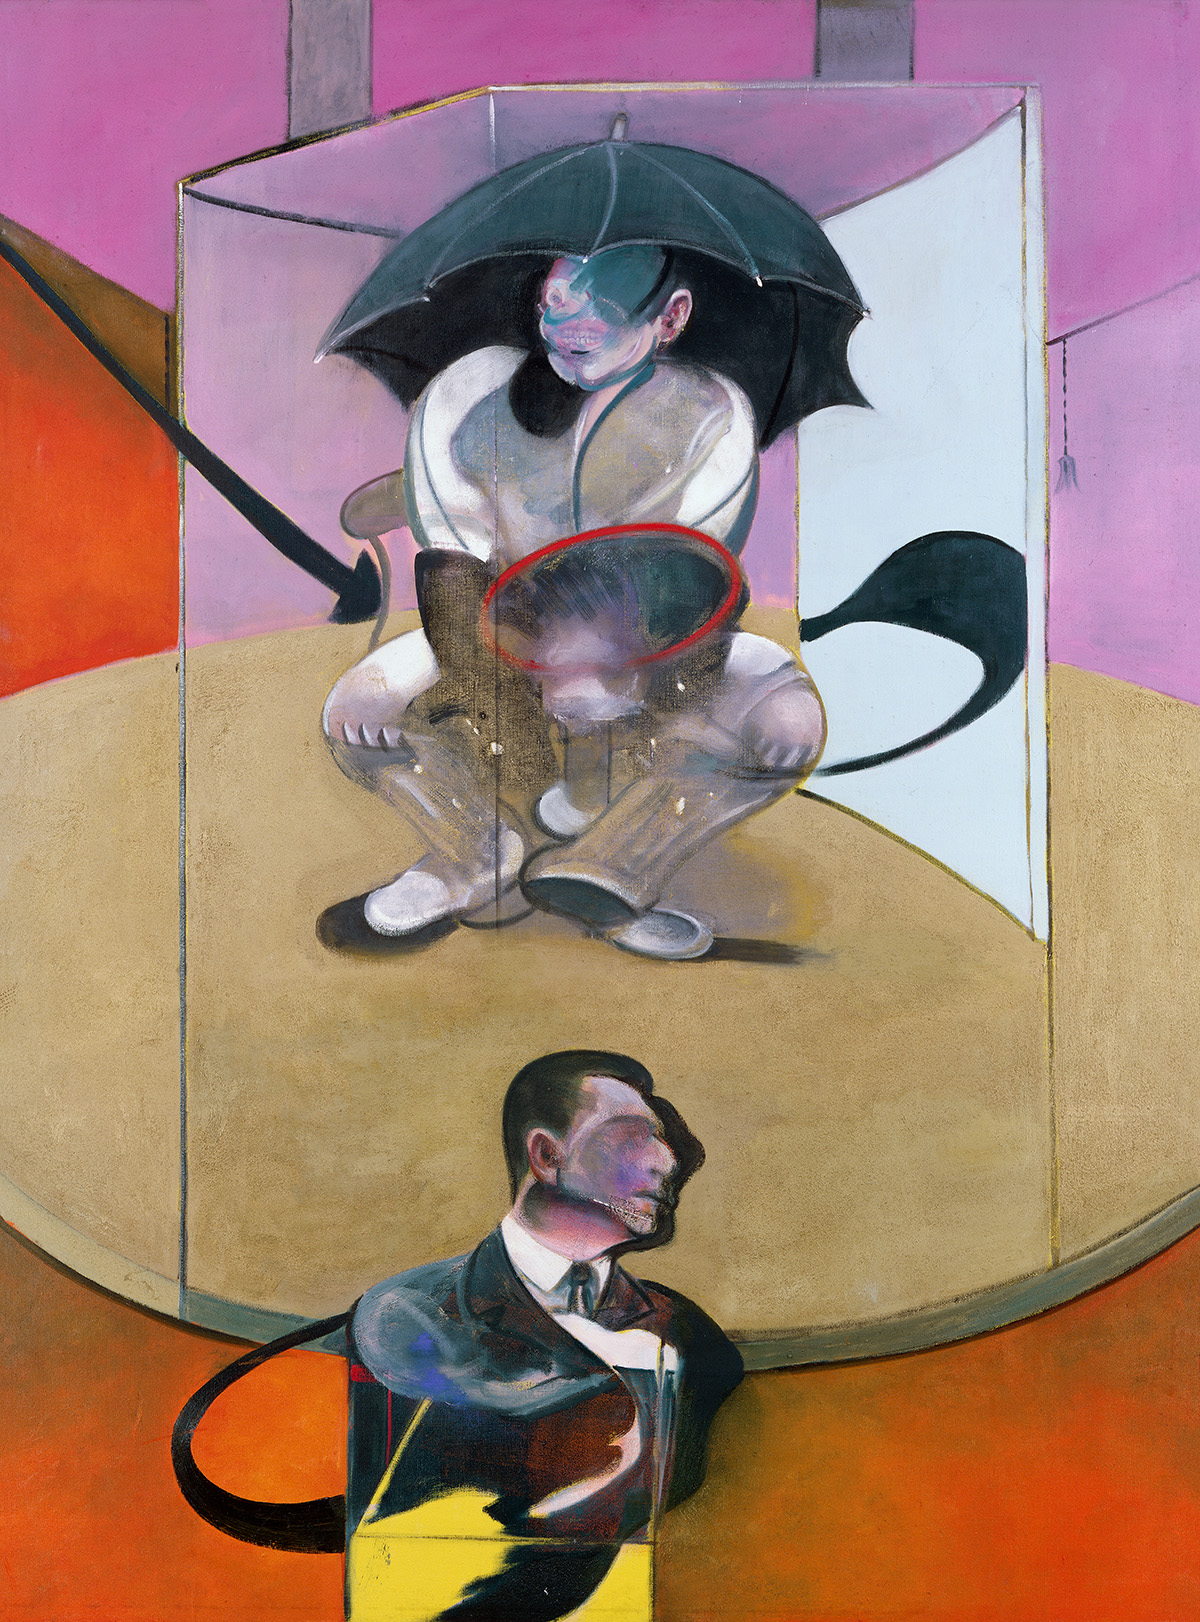 Francis Bacon, Seated Figure, 1978. Oil and sand on canvas. CR number 78-06. The estate of Francis Bacon / DACS London 2020. All rights reserved.